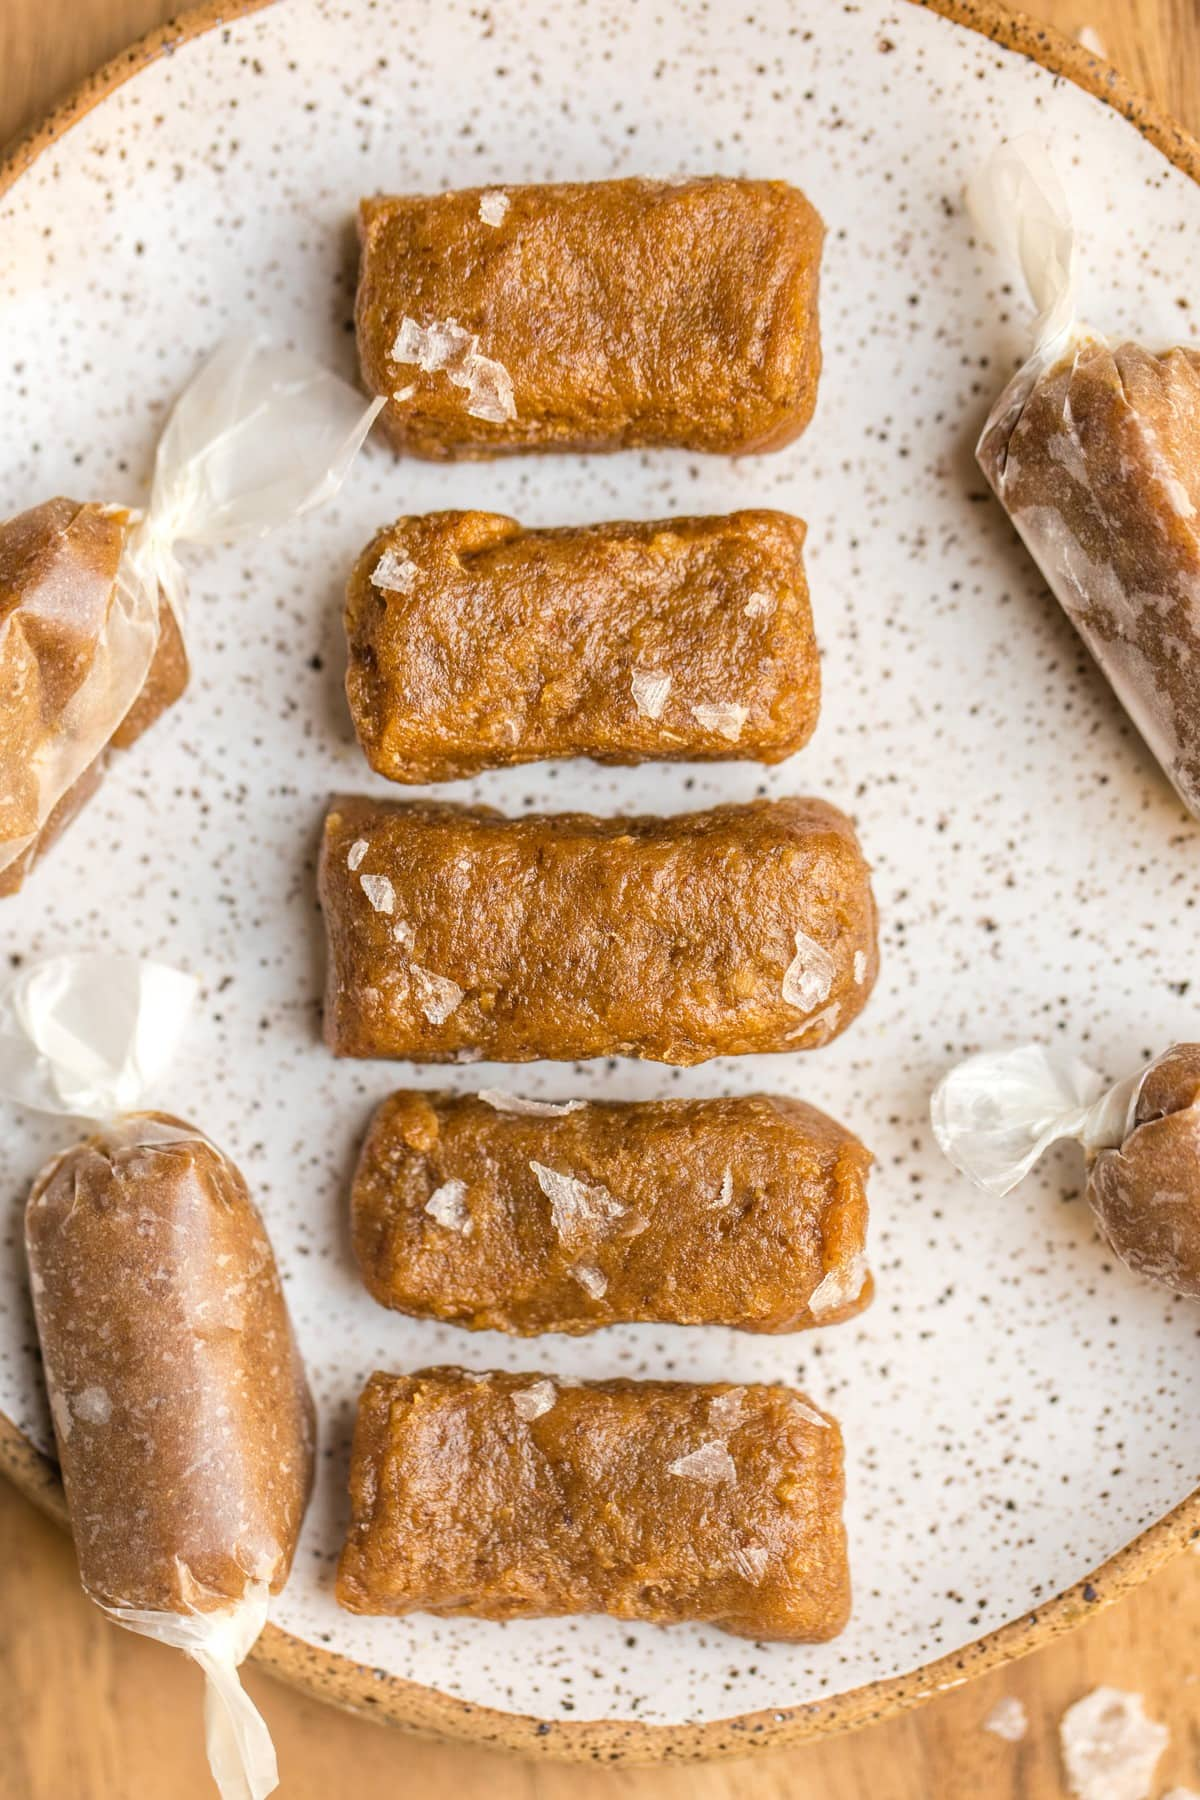 healthy salted caramel bites in row on white speckled plate